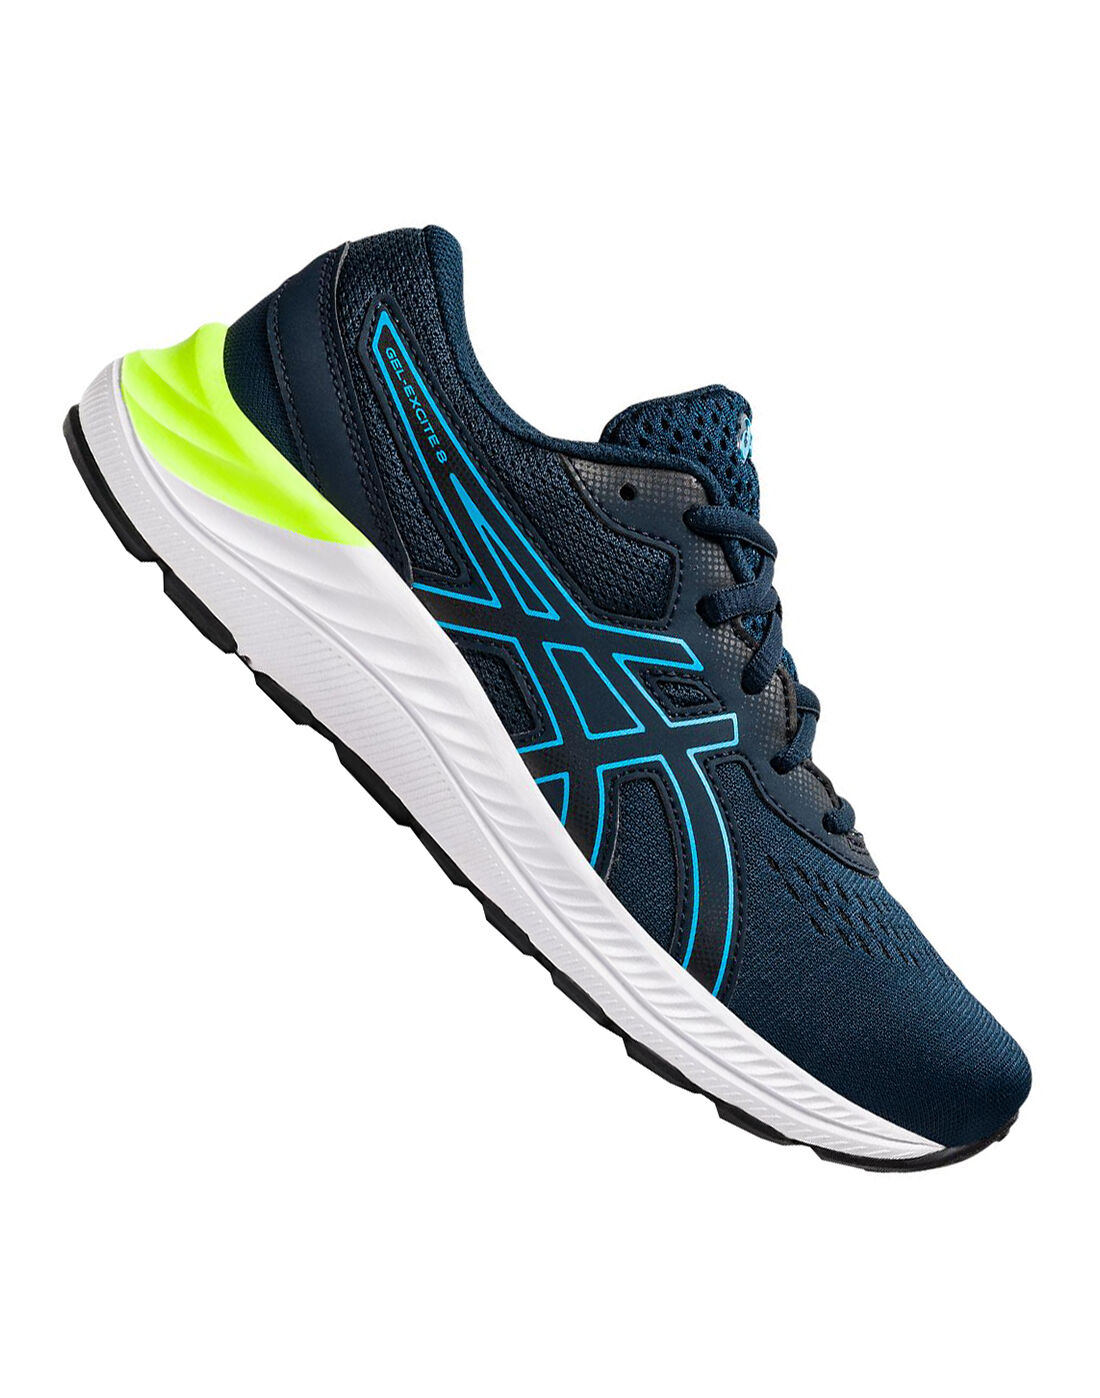 Asics Older Boys Gel-Excite 8 - Black | Life Style 7south Sports IE